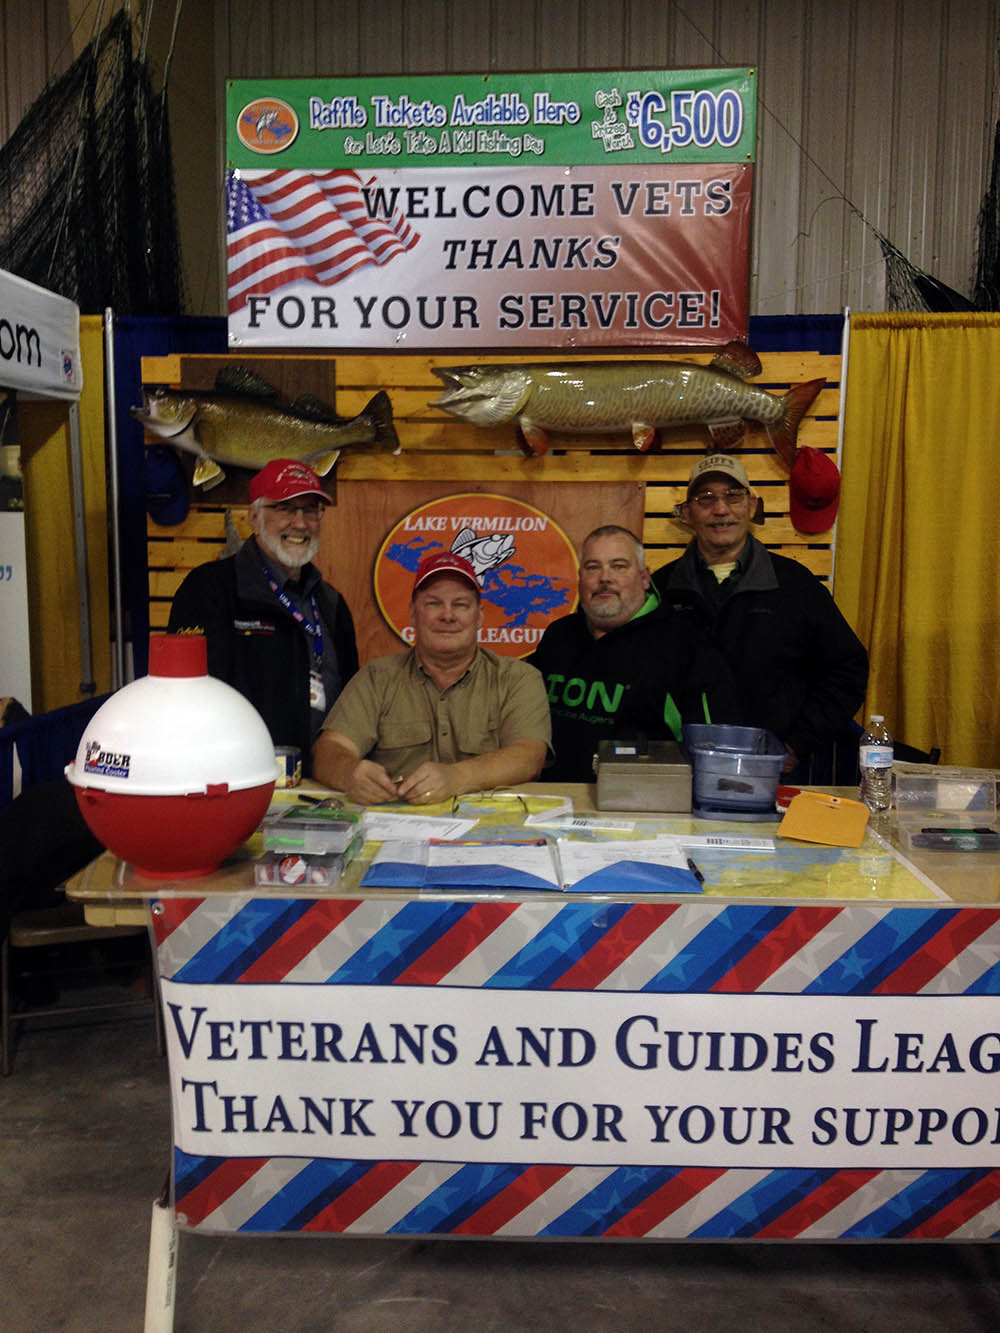 Thank you vets for your service booth image